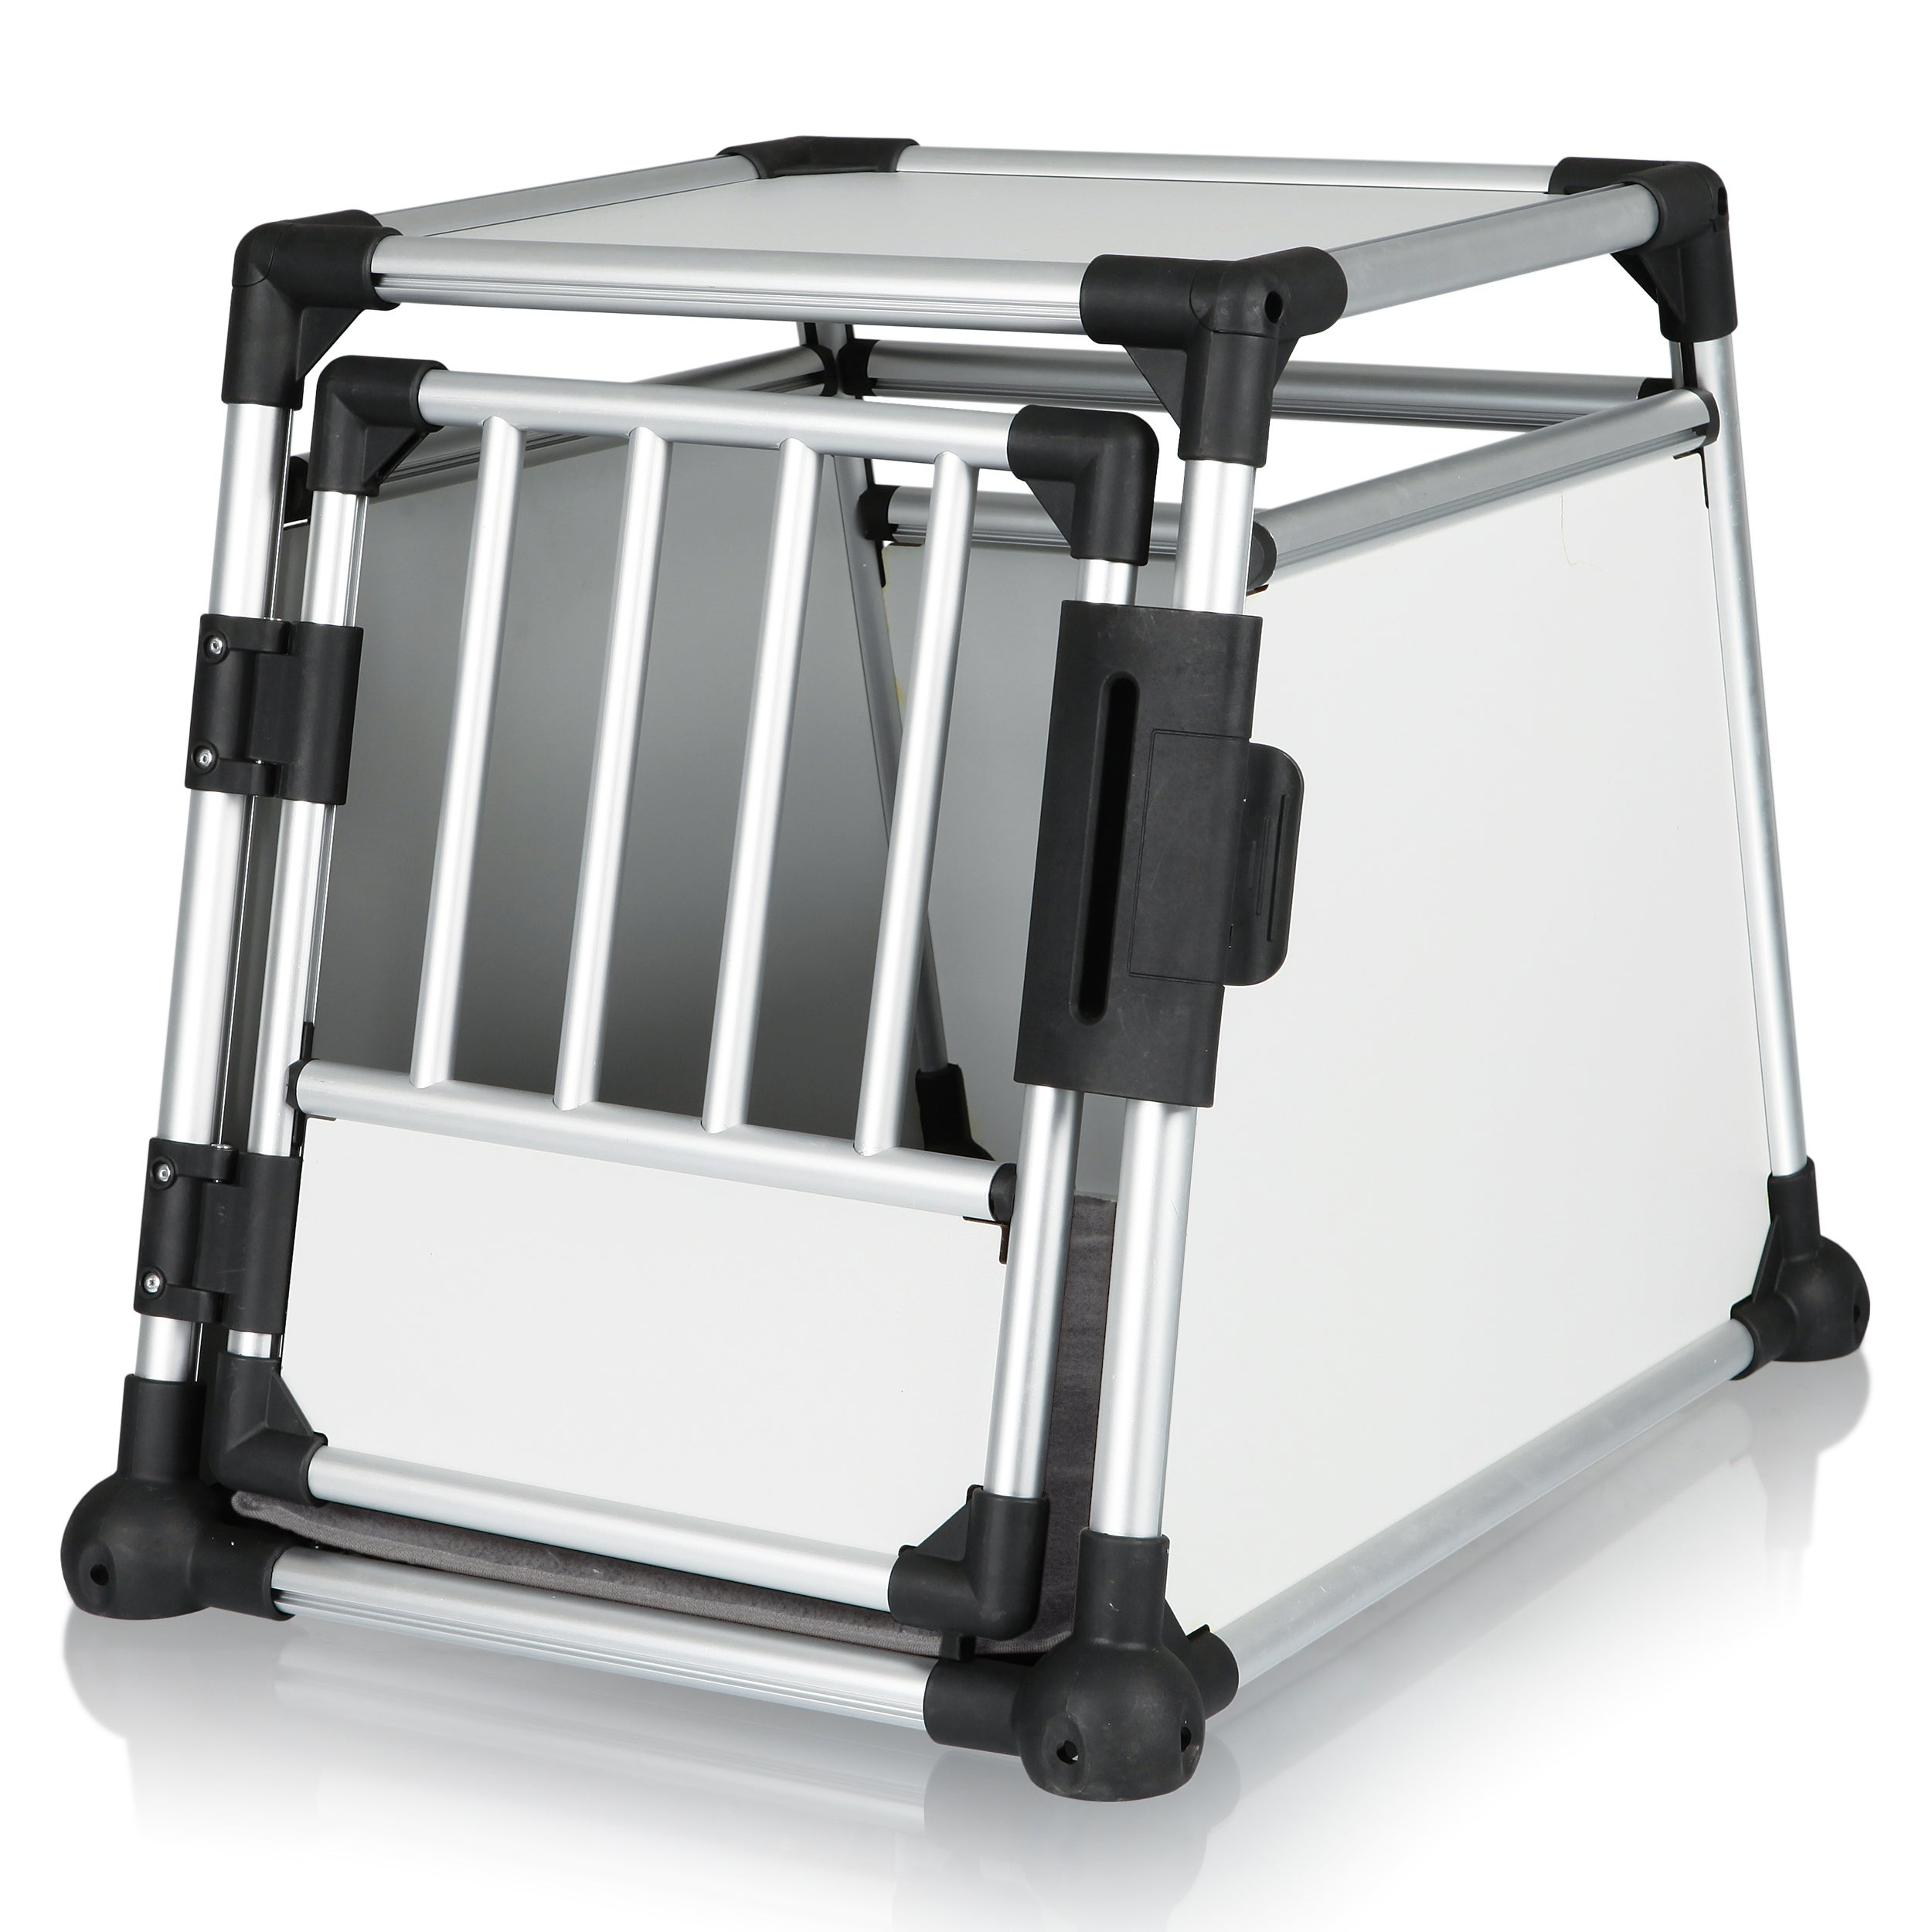 Trixie Scratch-Resistant Metallic Crate (M)